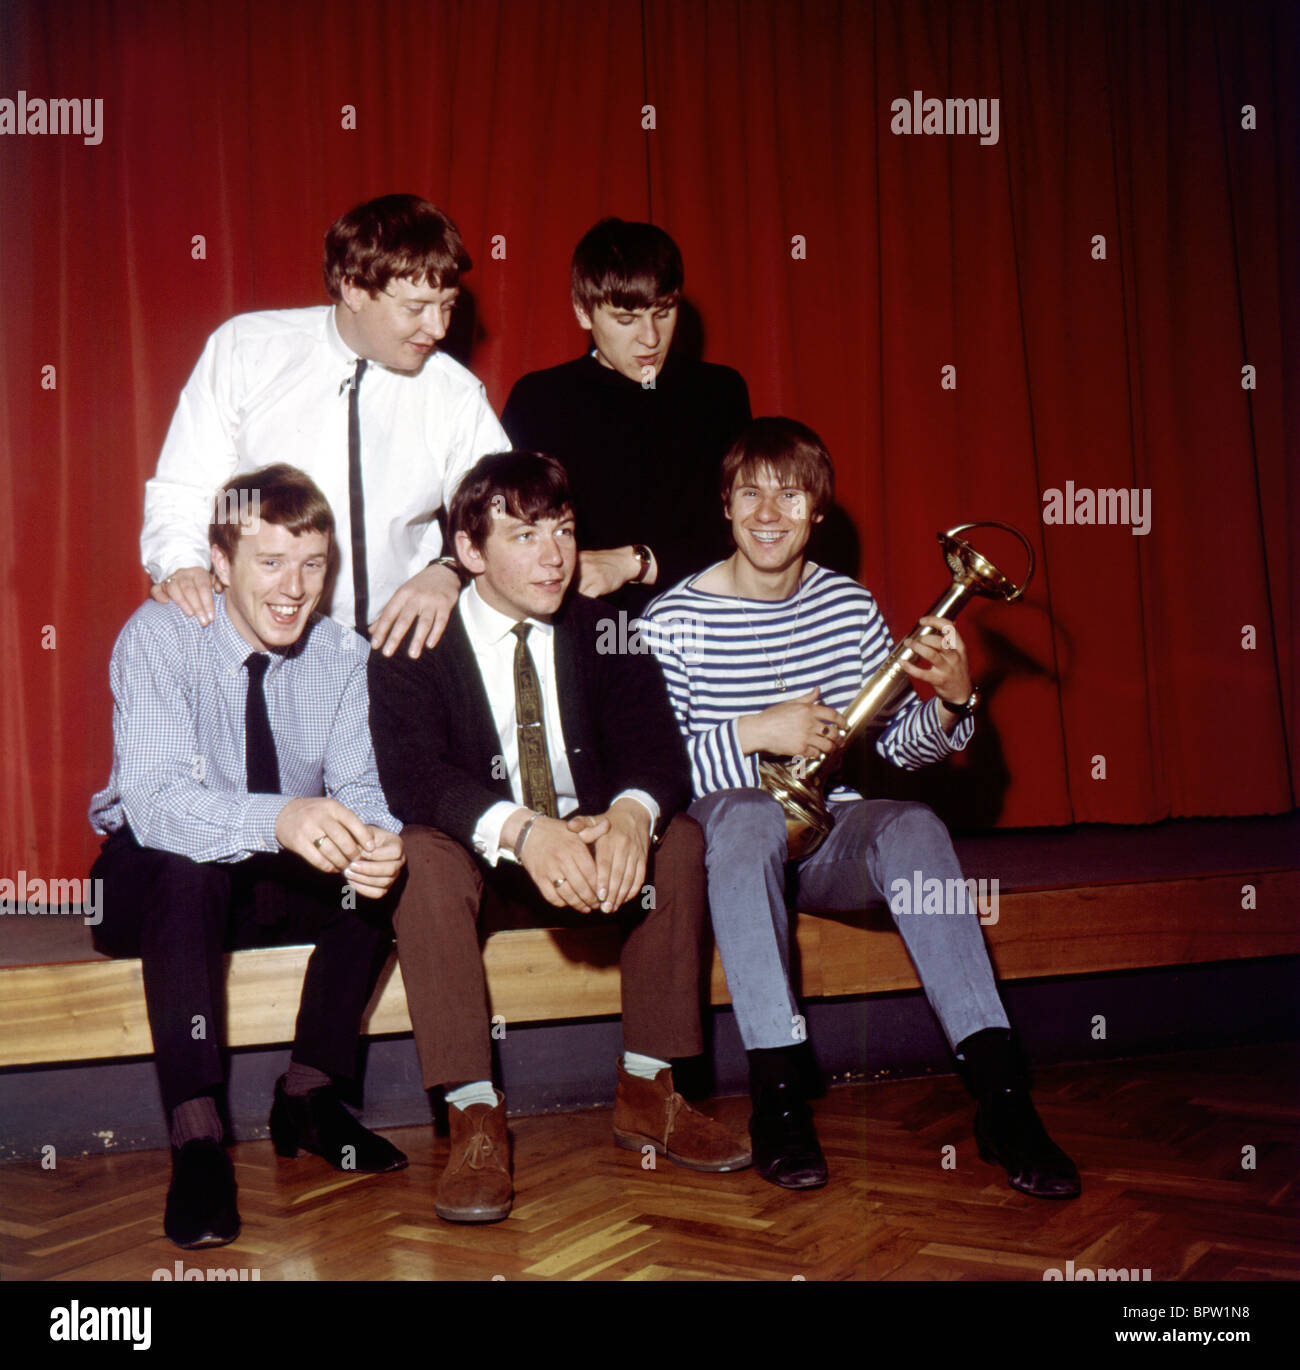 Image of: Rising Sun Alan Price Eric Burdon John Steel Hilton Valentine Bryan Chandler The Animals Pop Group 1964 Daily Mail Alan Price Eric Burdon John Steel Hilton Valentine Bryan Chandler